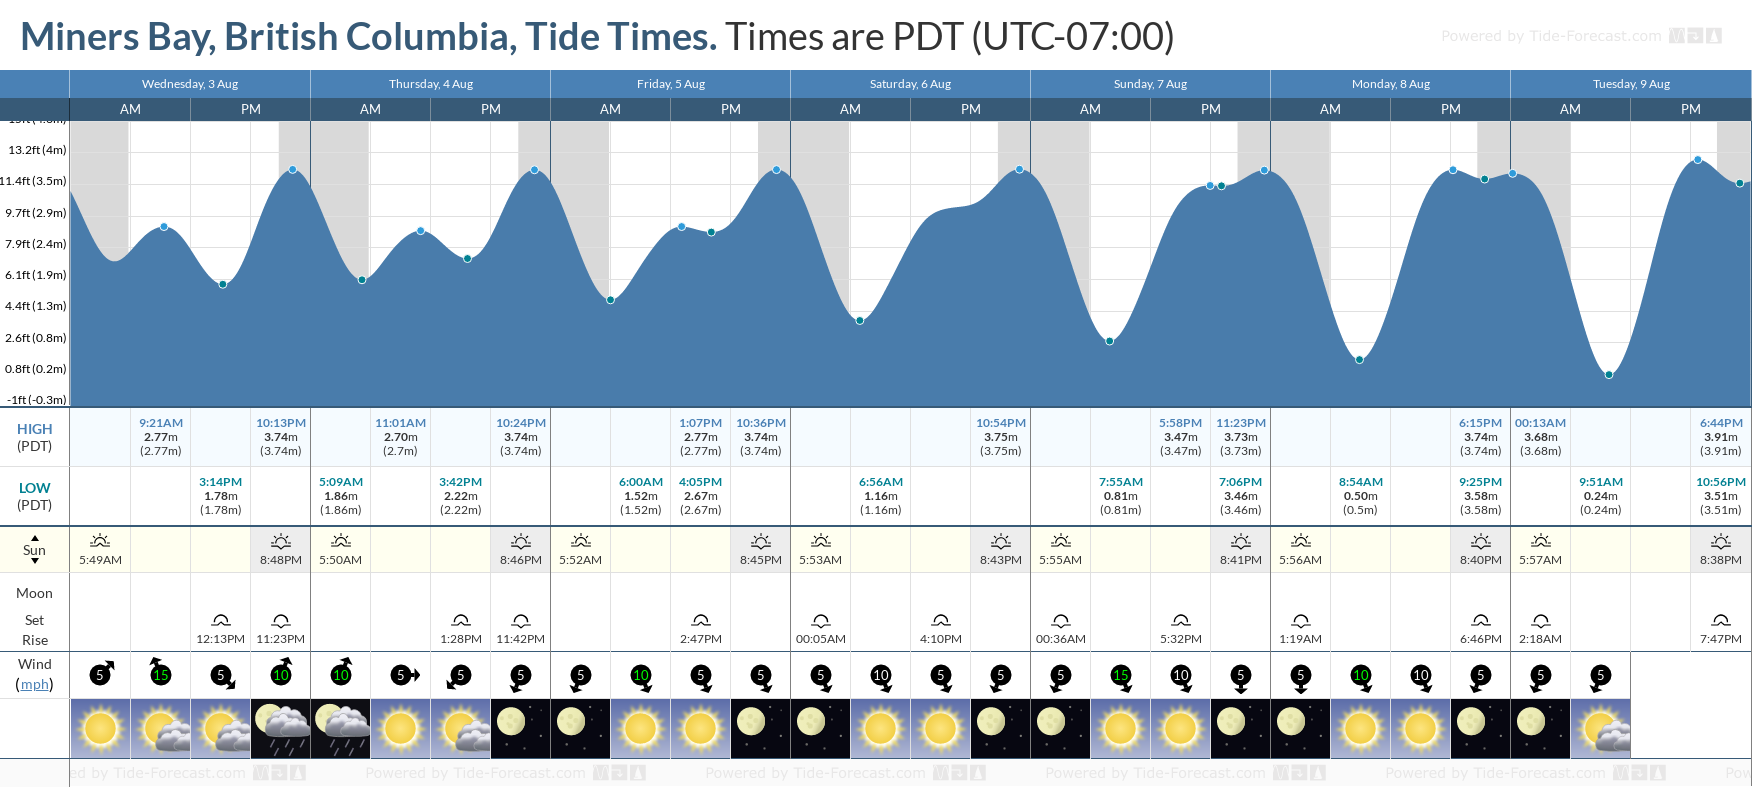 Miners Bay, British Columbia Tide Chart including high and low tide tide times for the next 7 days